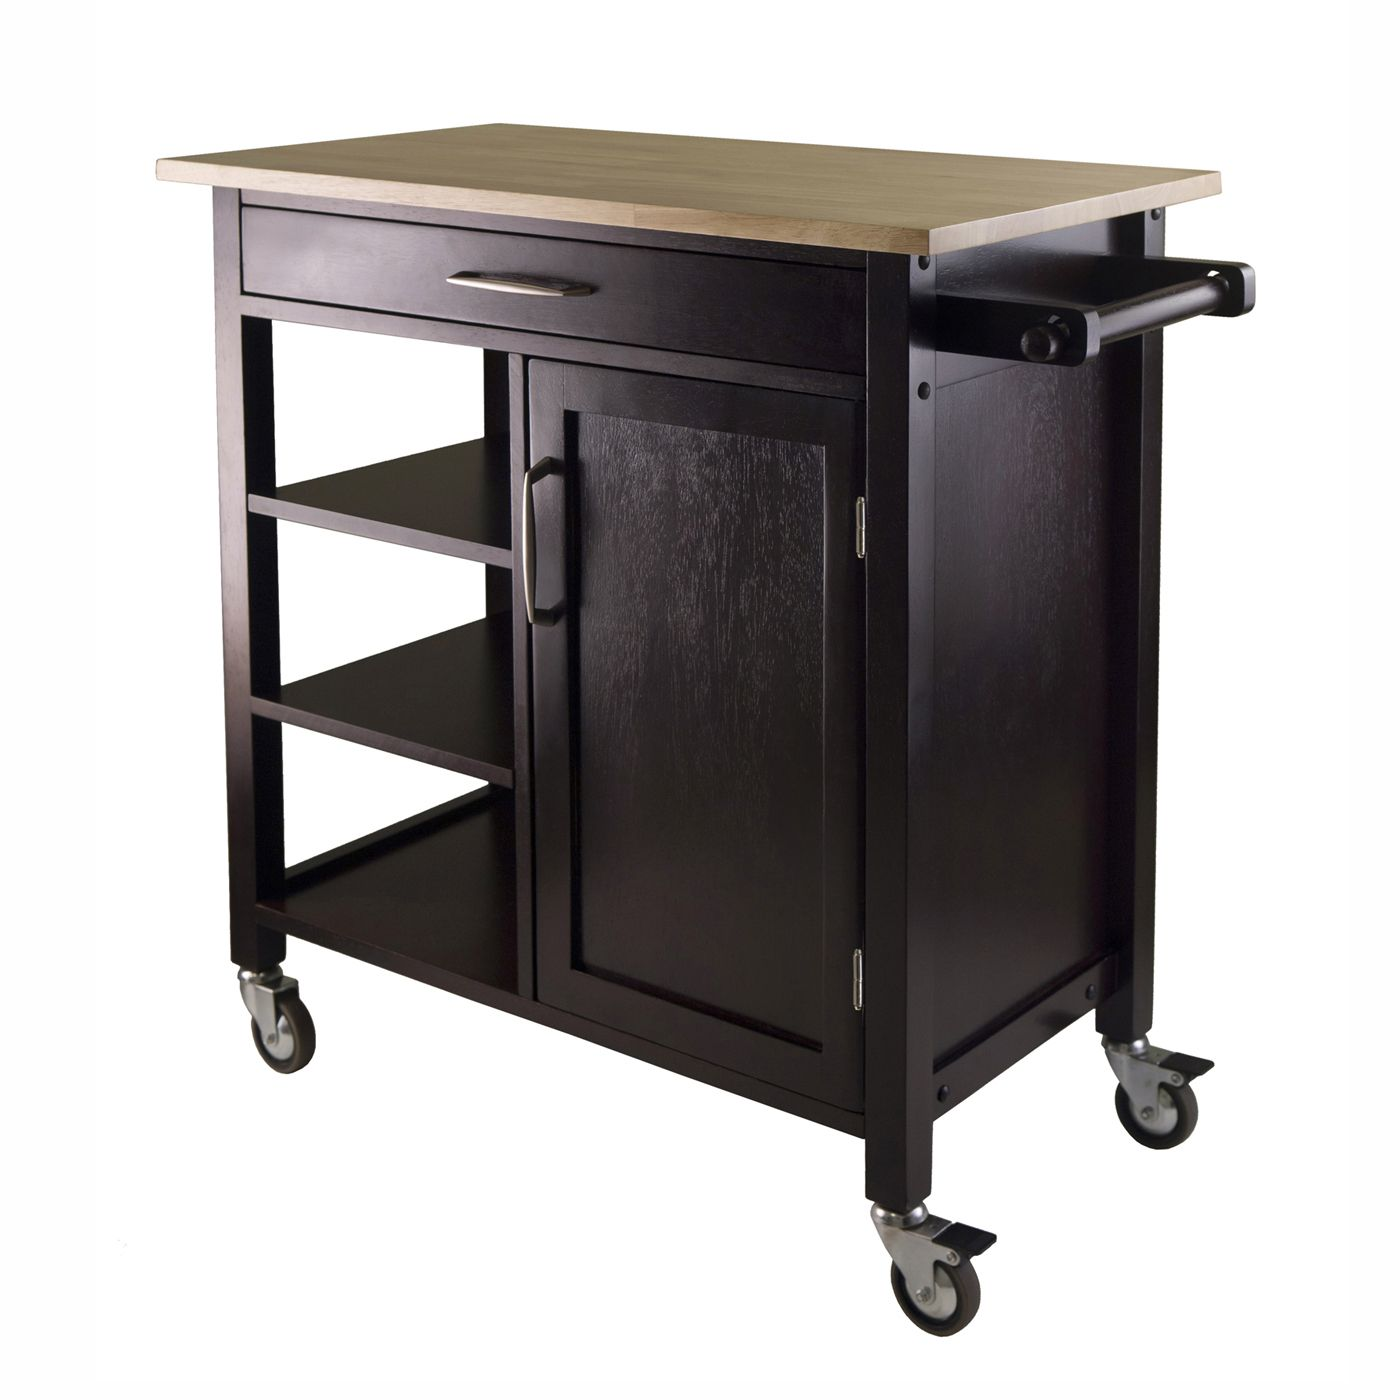 Shop Winsome Wood 92534 Mali Kitchen Cart at Lowe\'s Canada. Find our ...